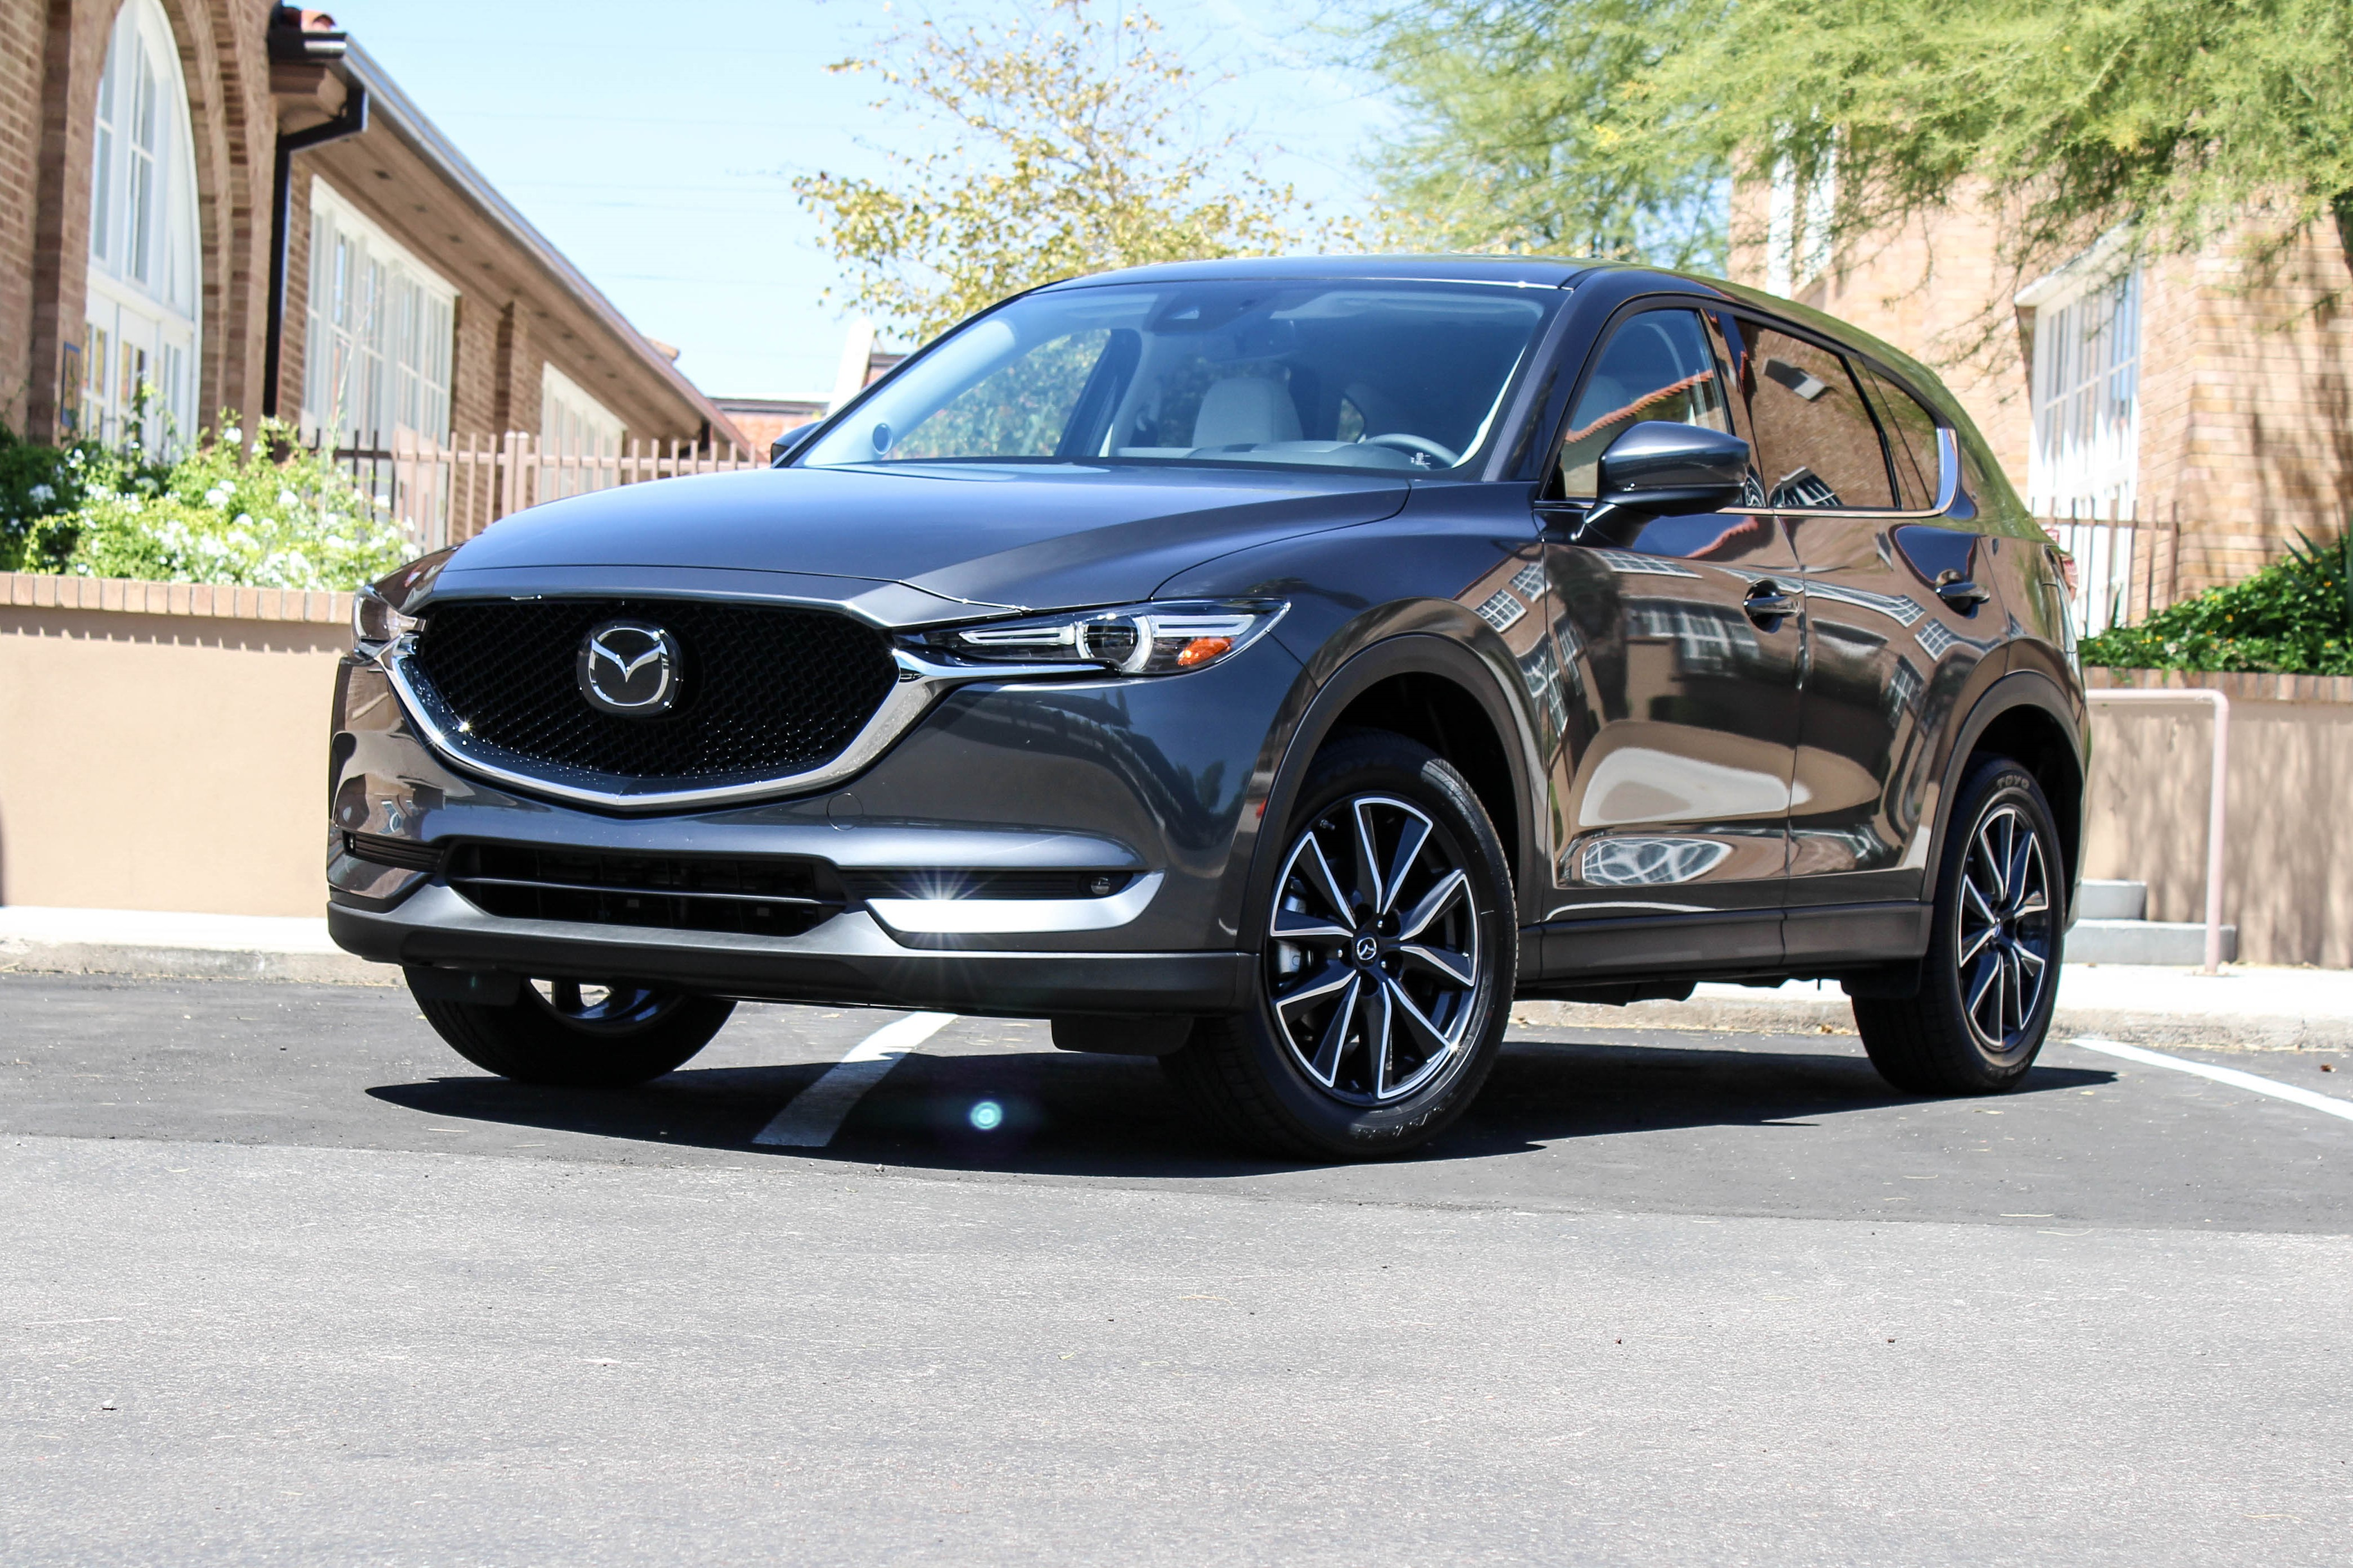 suv cx and reviews new photos review car performance mazda fantastic